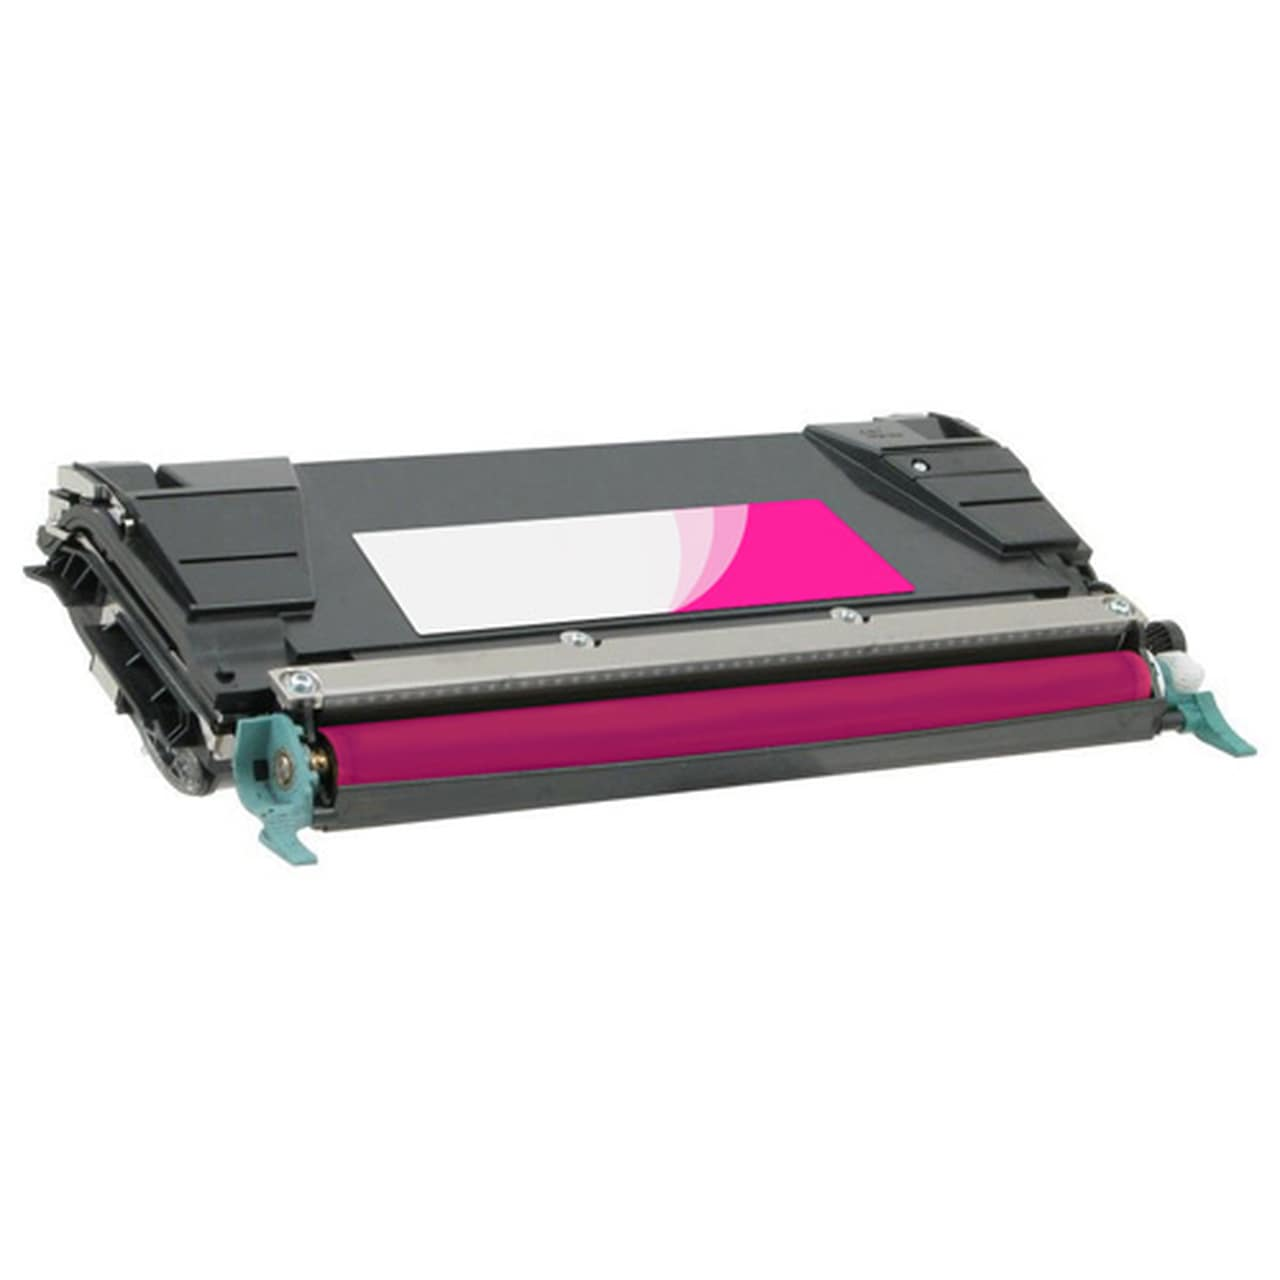 C5240MH Toner Cartridge - Lexmark Remanufactured (Magenta)